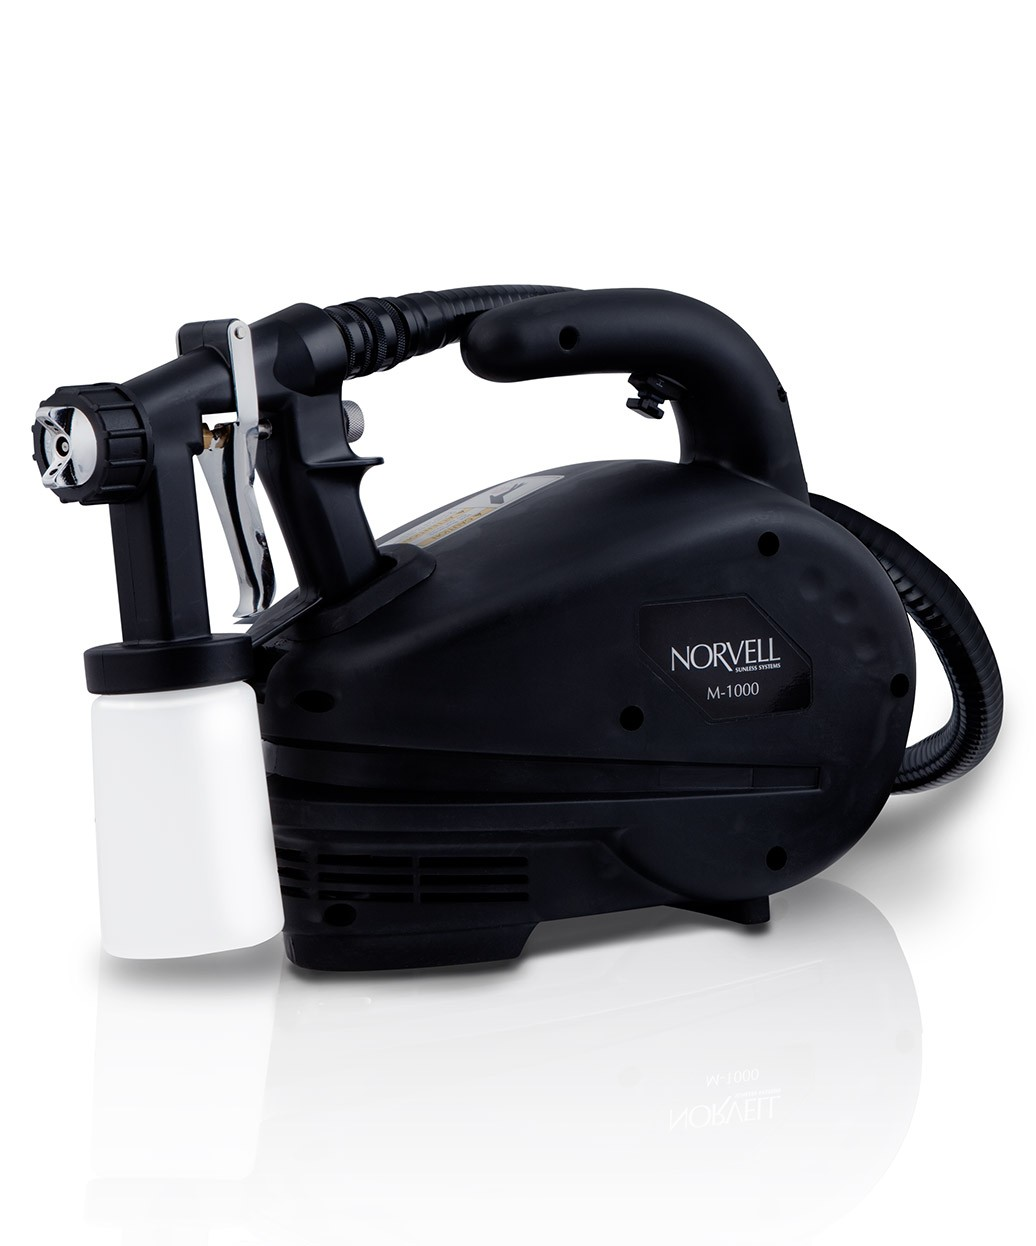 Norvell Sunless Mobile Spray Kit